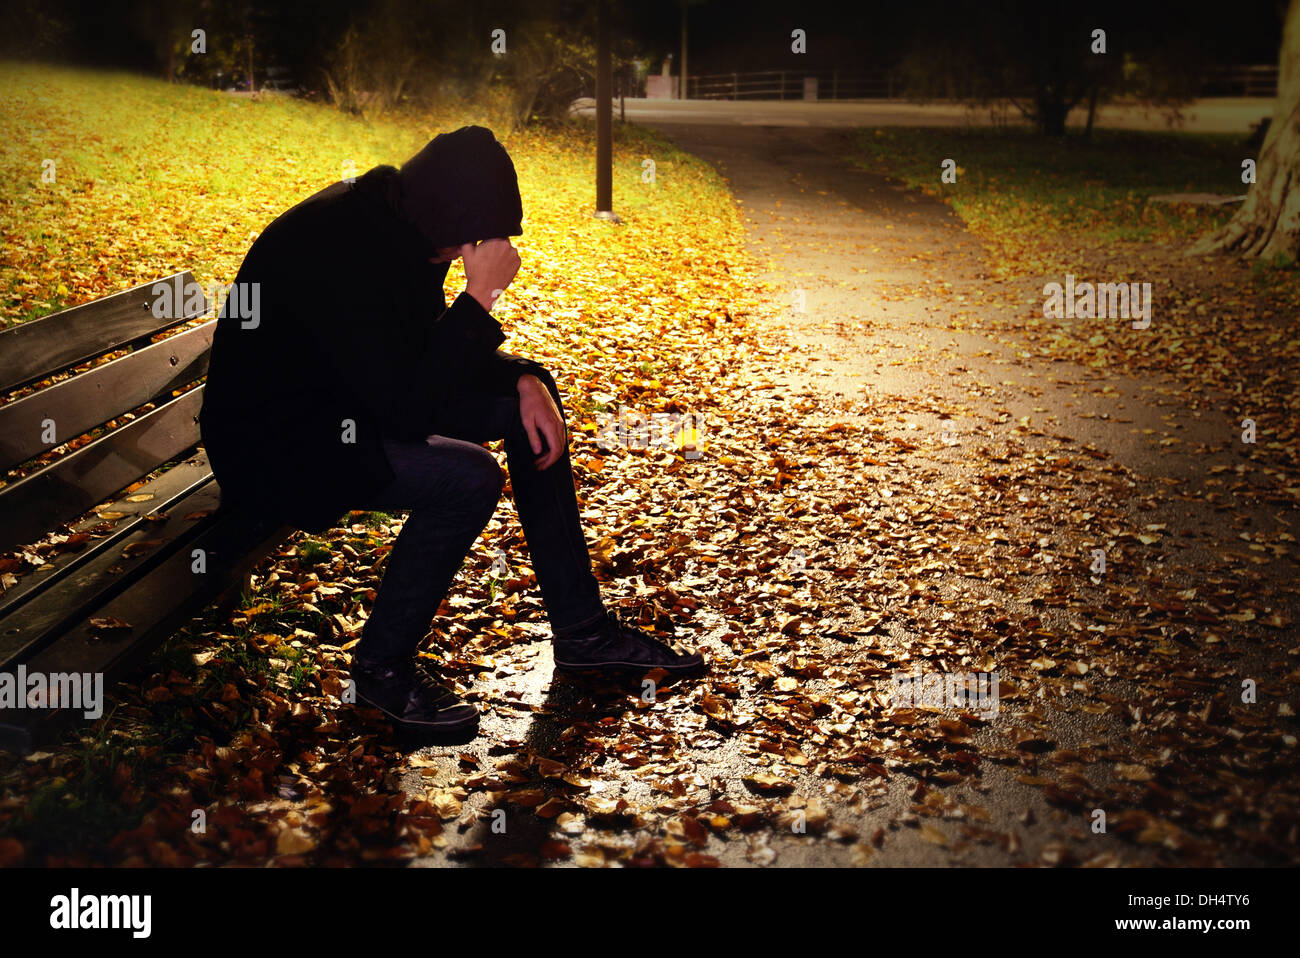 Depressed Man On Bench - Stock Image